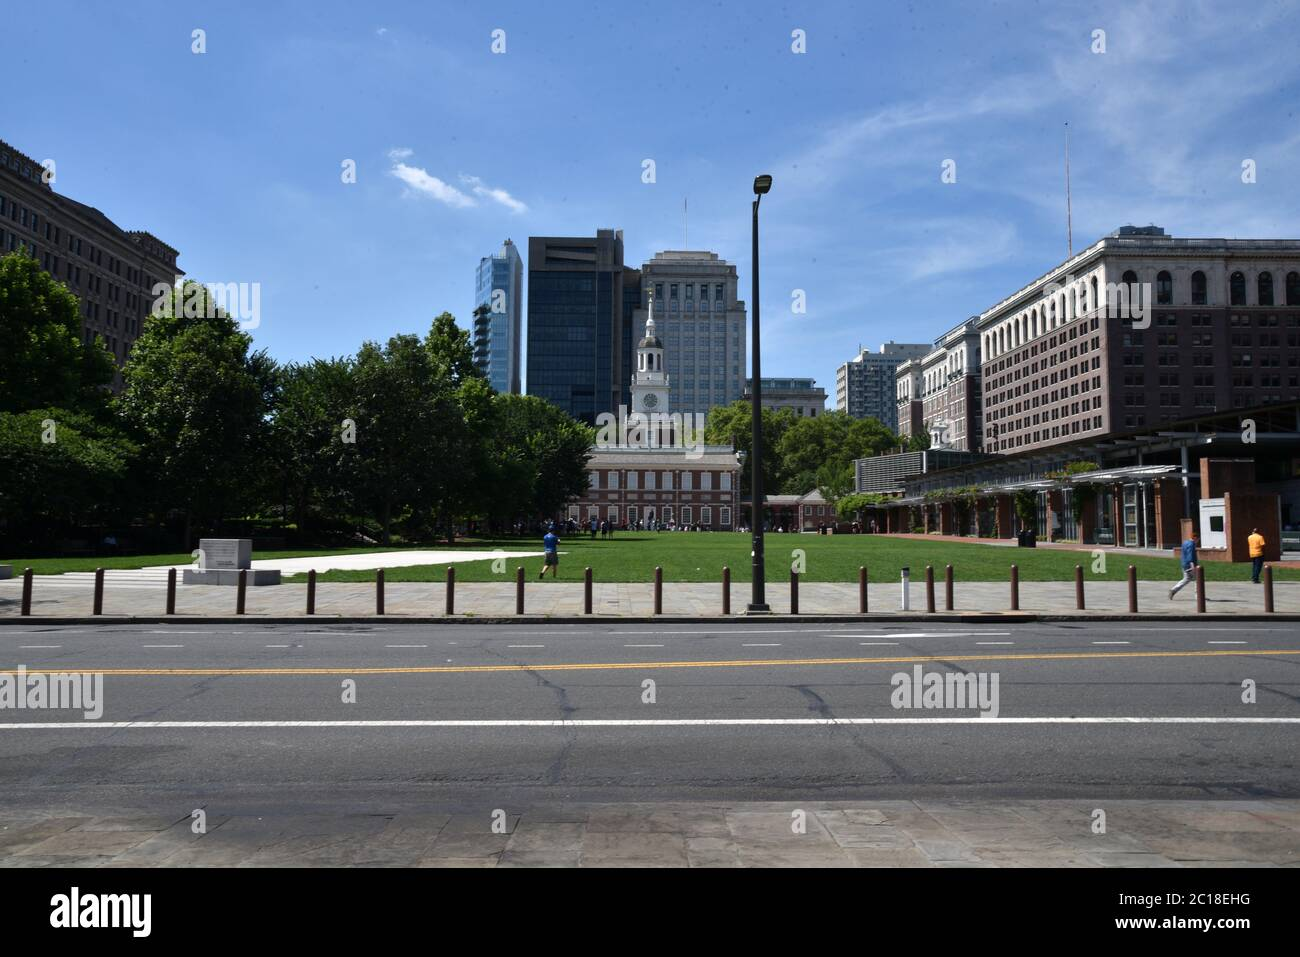 Philadelphia, PA, USA - JUNE 26, 2019: Independence Historic National Park, Independence Hall and The Liberty Bell Center in Old Towne Philadelphia Stock Photo